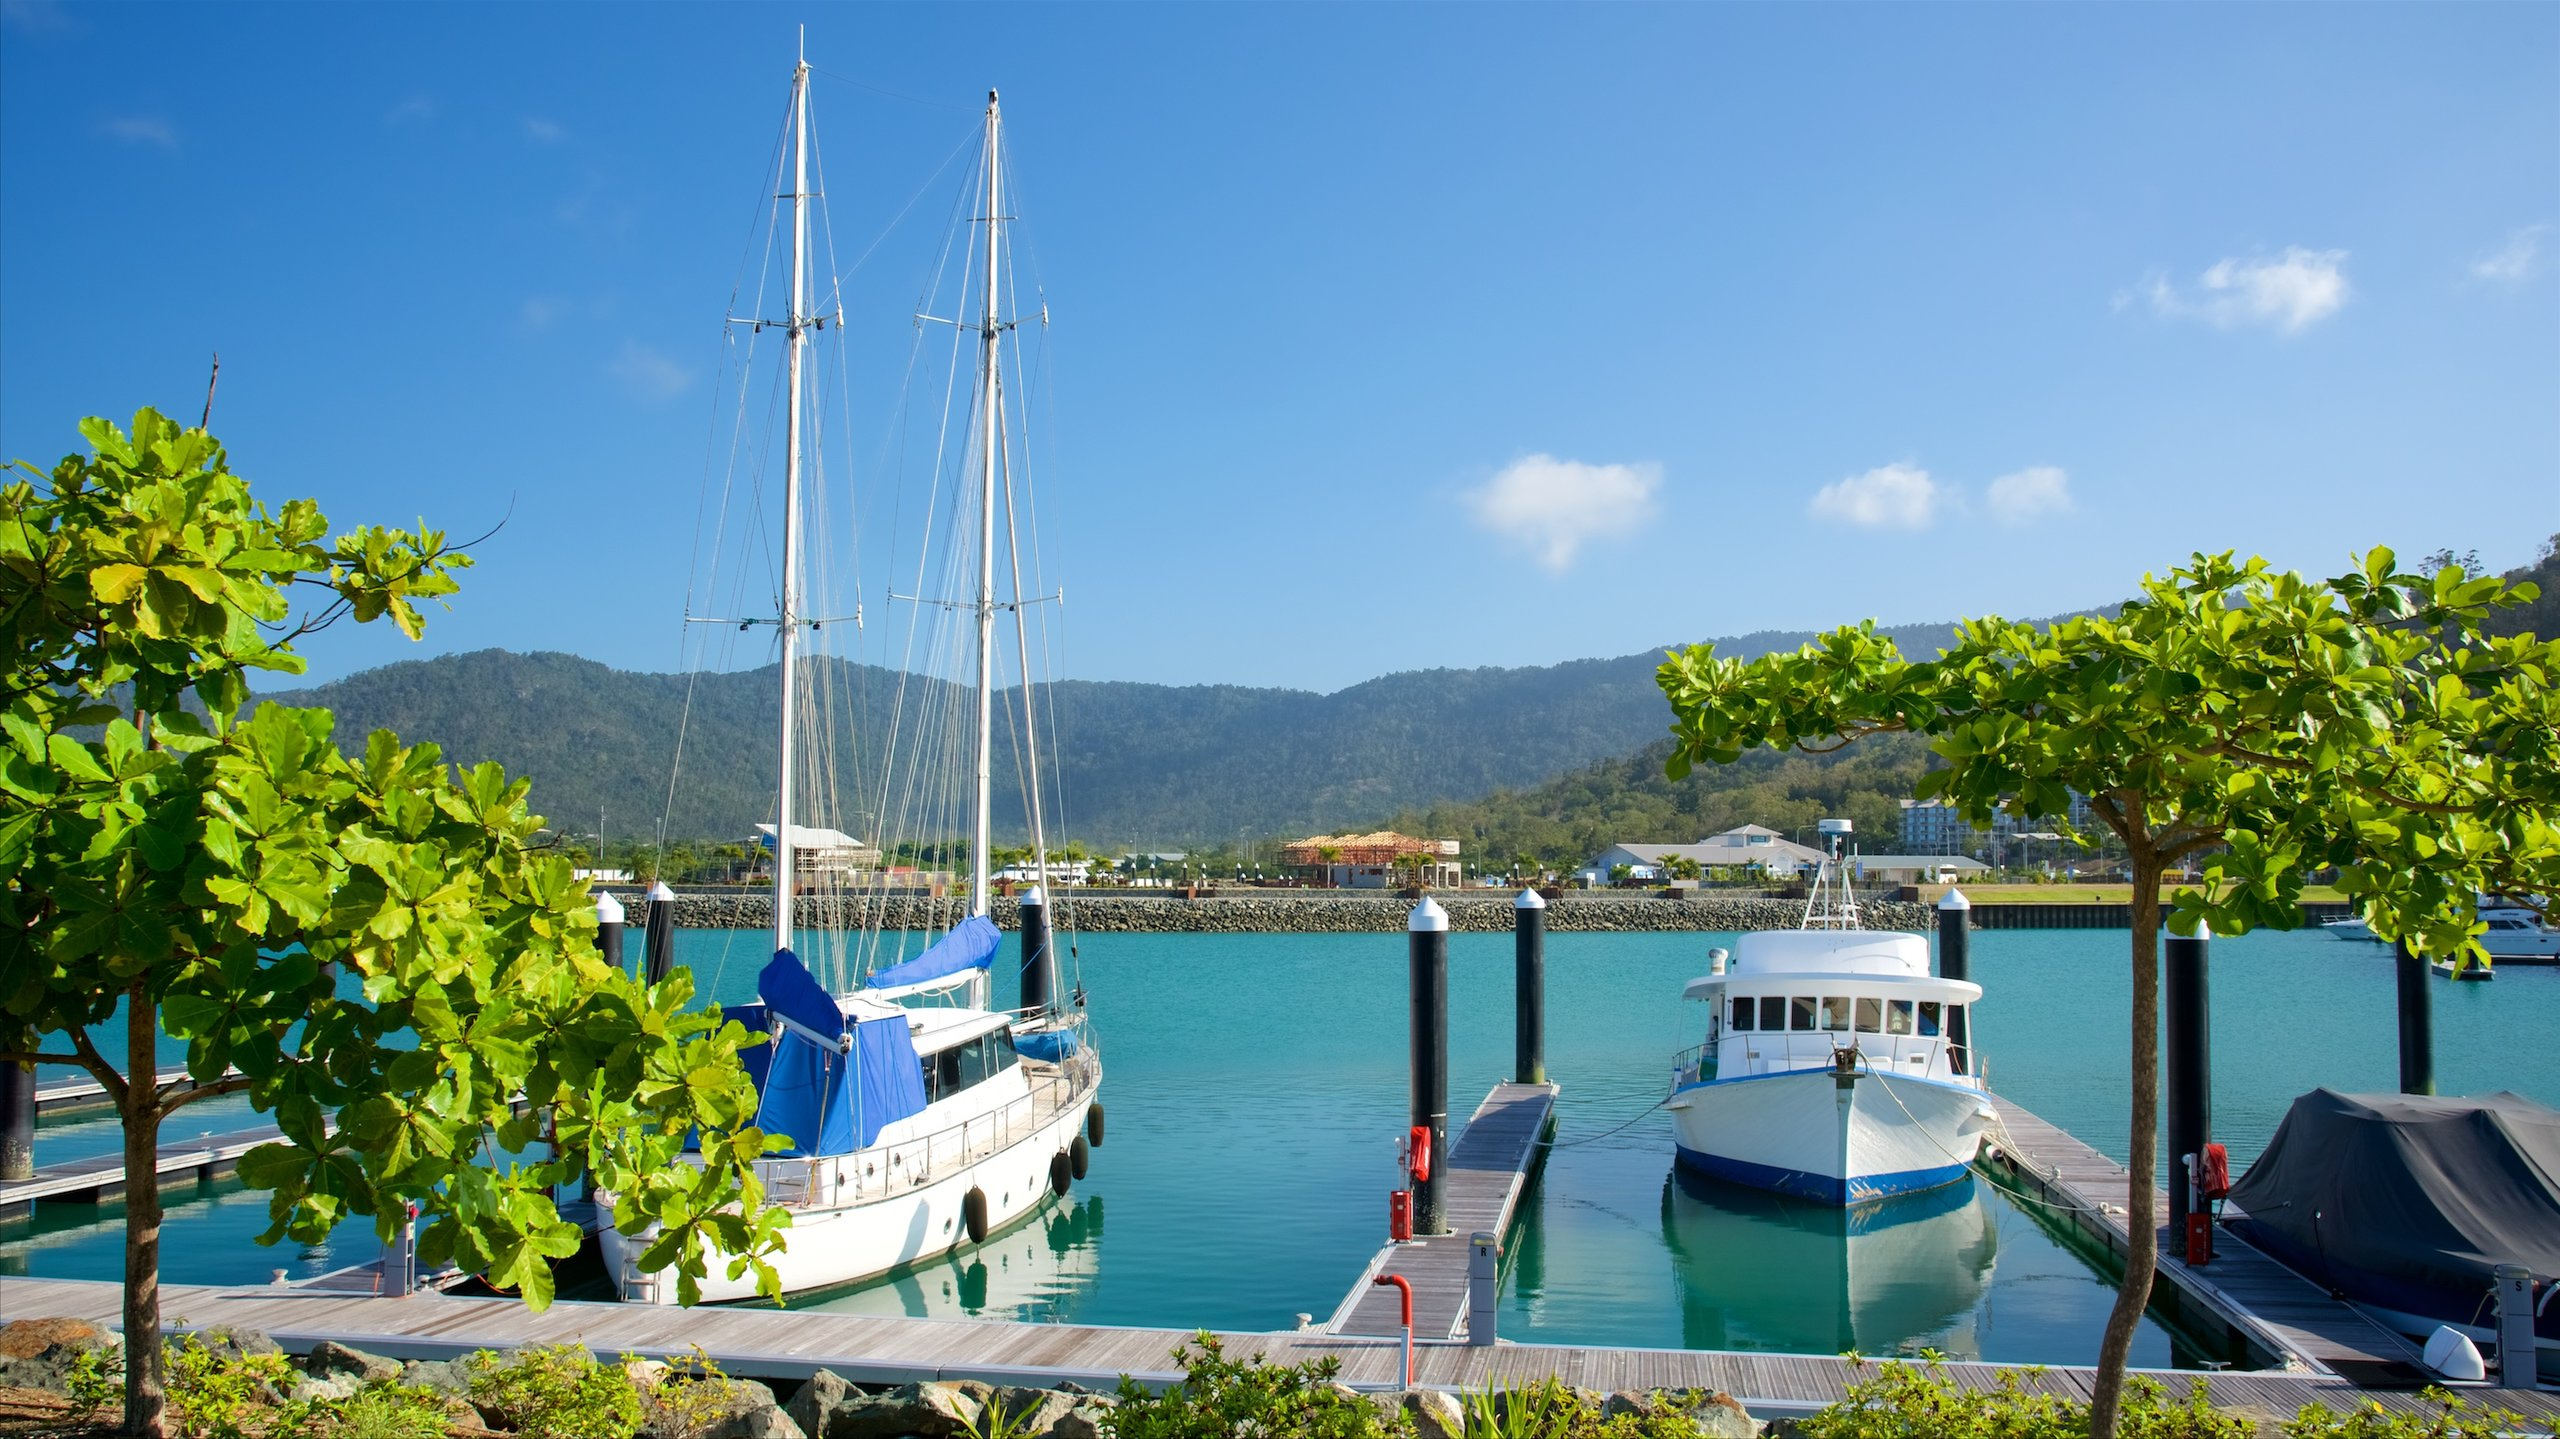 This sun-kissed marina is your gateway to the world-famous Whitsunday Islands. Sail or drive here to shop or dine with views over the glistering turquoise waters.